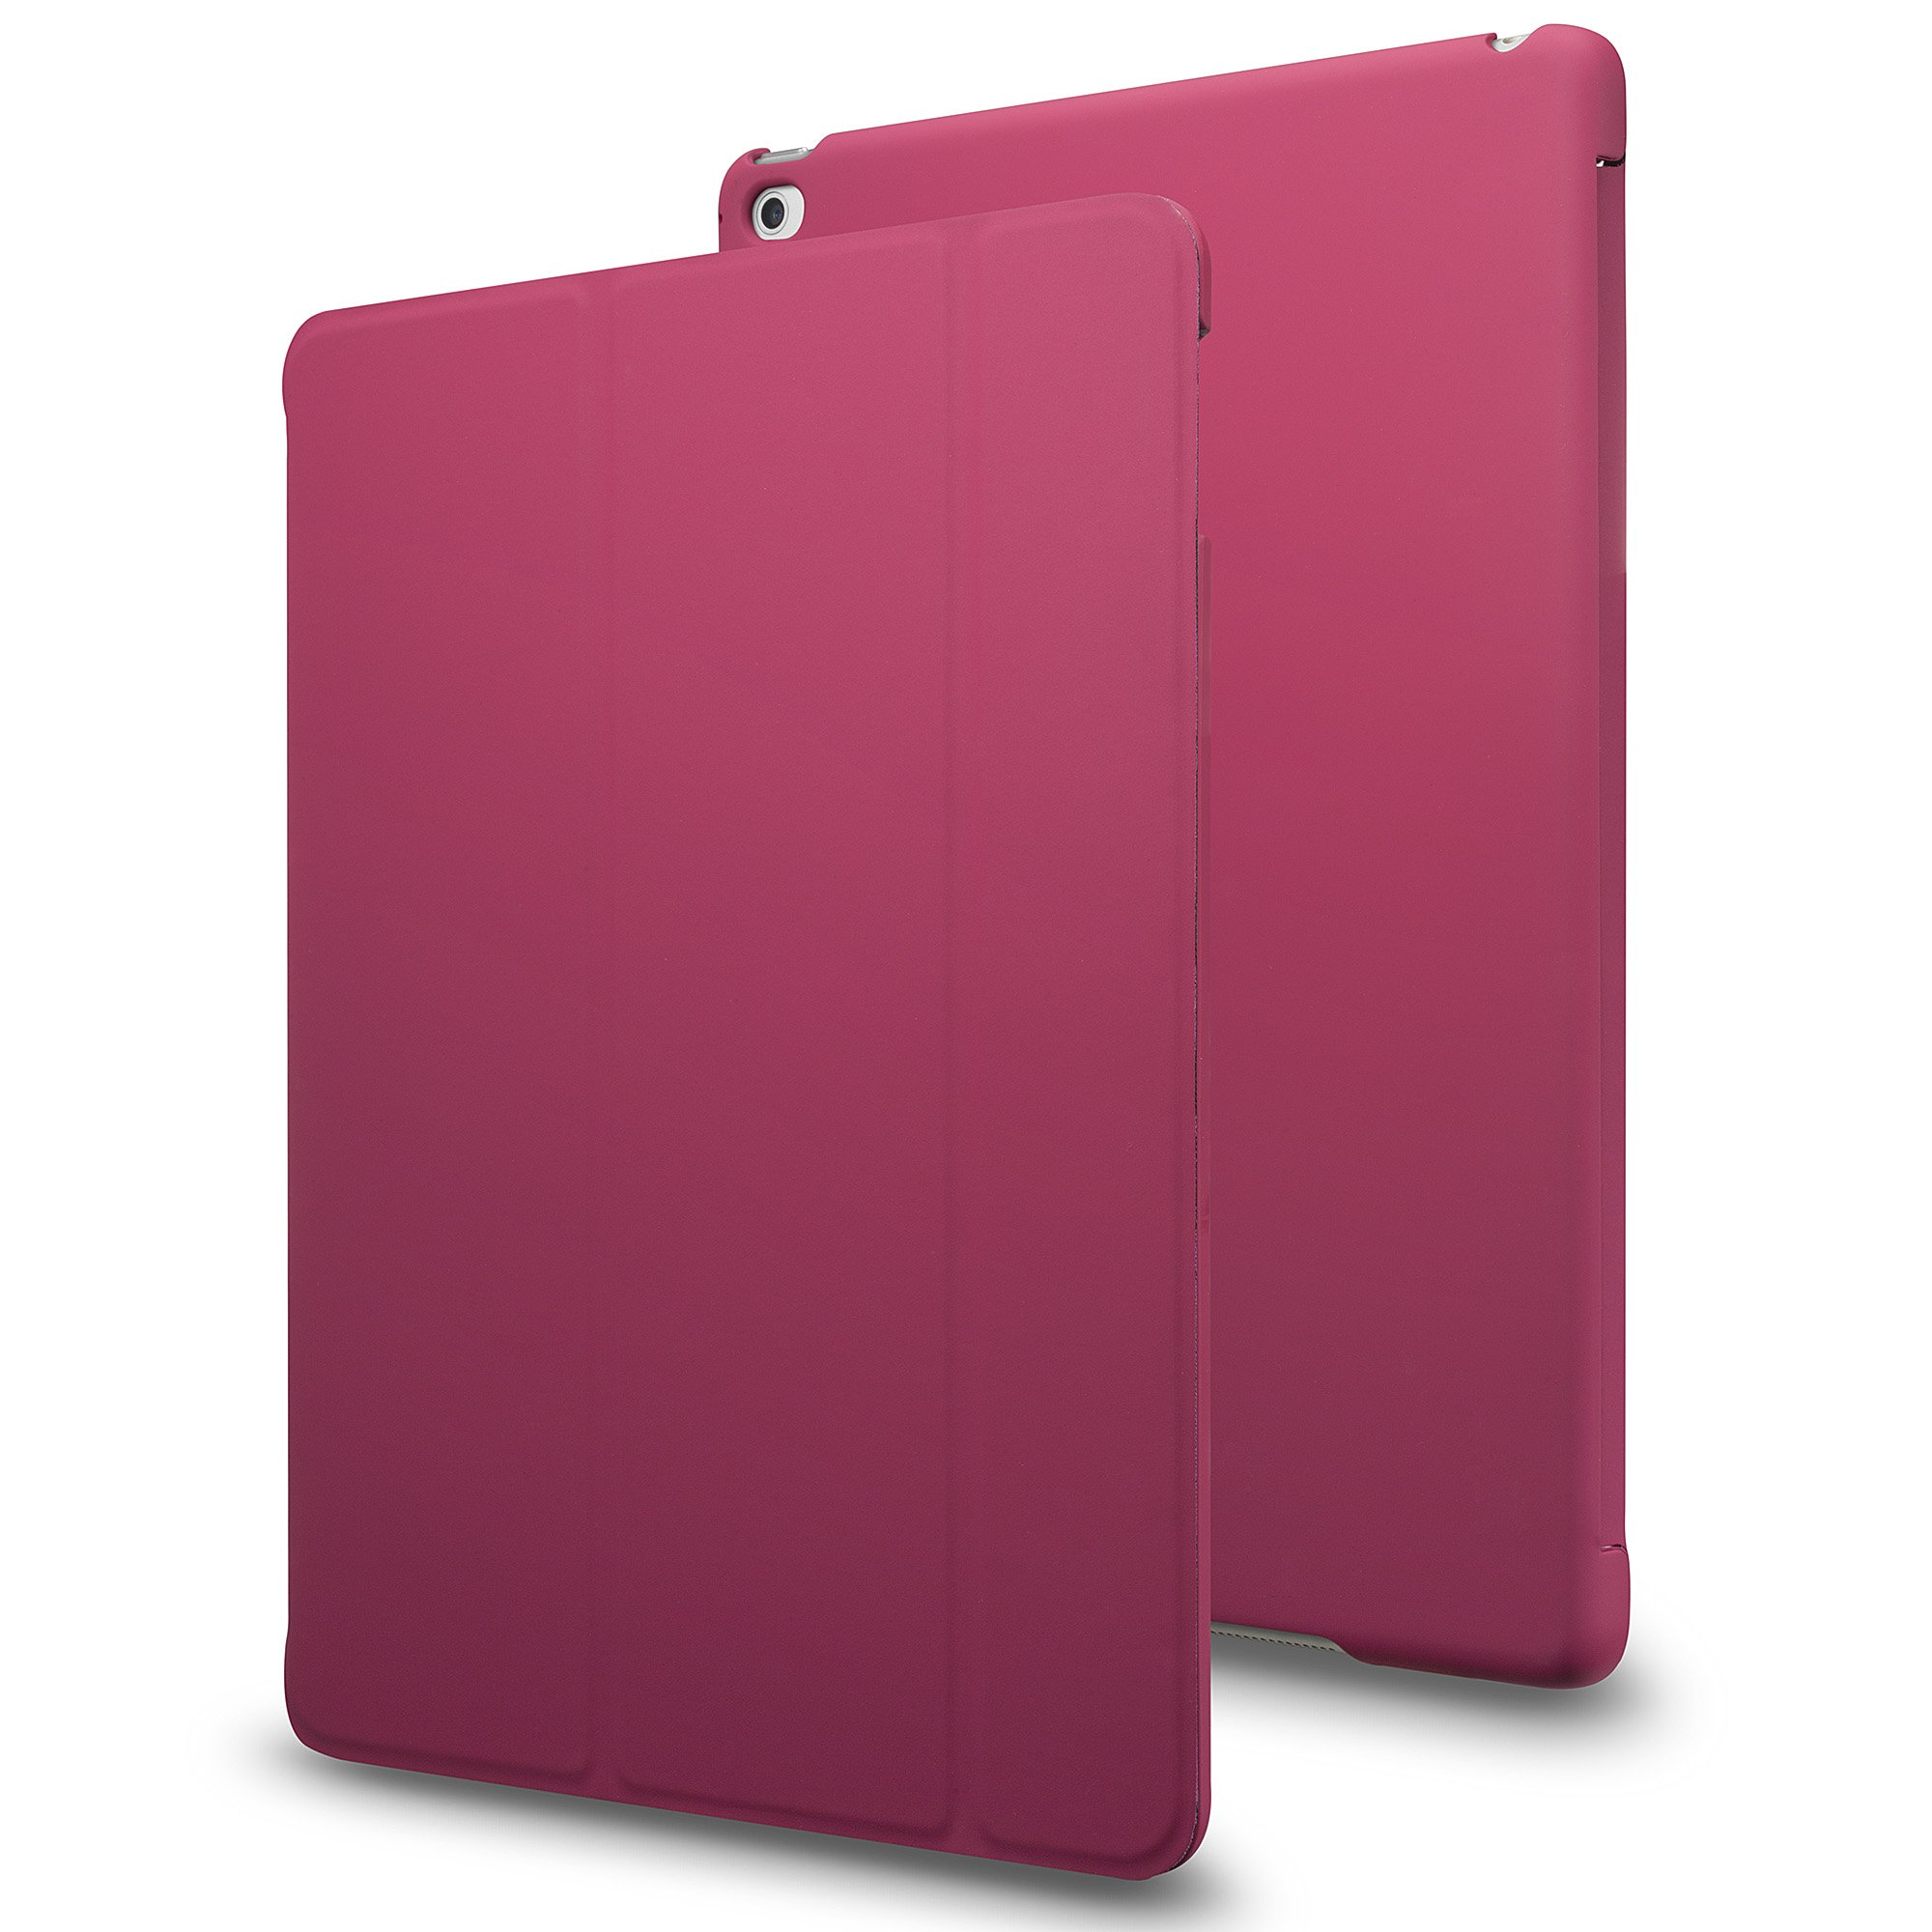 INVELLOP iPad Pro case, Hot Pink [Slim Fit] Case Cover for Apple iPad Pro 9.7 (2016 Release) (Fits ONLY 9.7 inch iPad Pro) (Hot Pink)